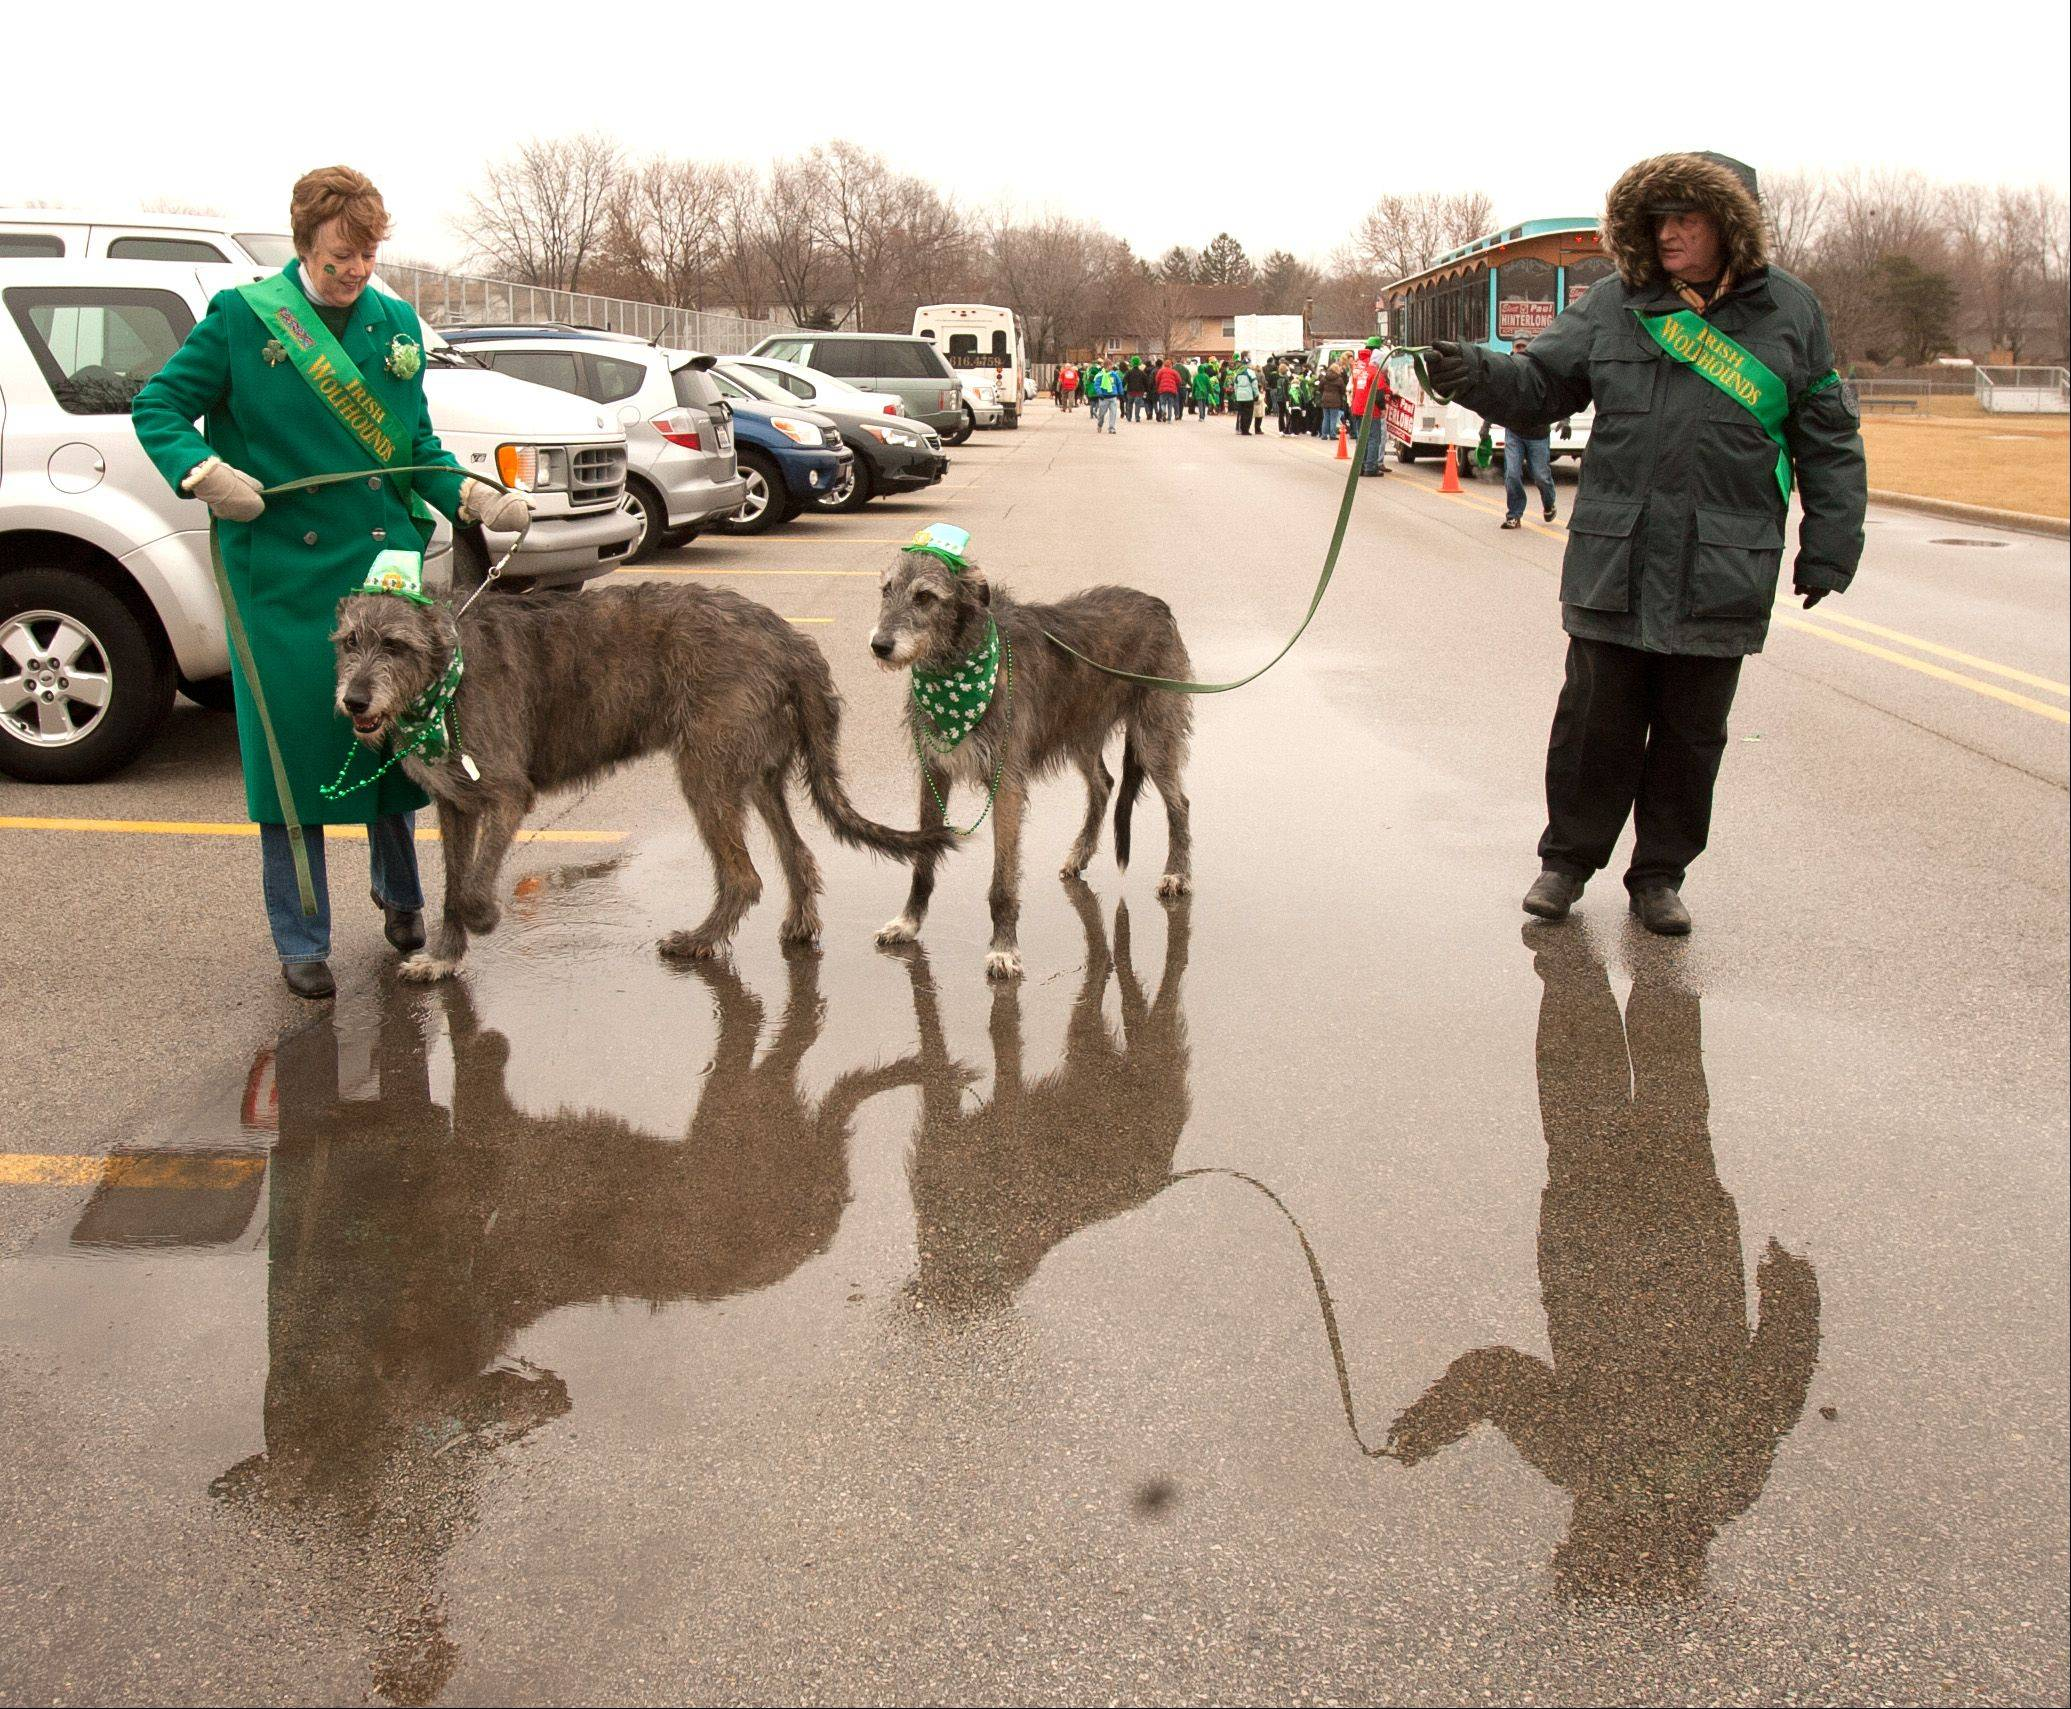 Joe and Madeline Mahoney of Shorewood and their Irish wolfhounds are two of the many dog owners who attended the St. Patrick's Day Parade on Saturday in Naperville.